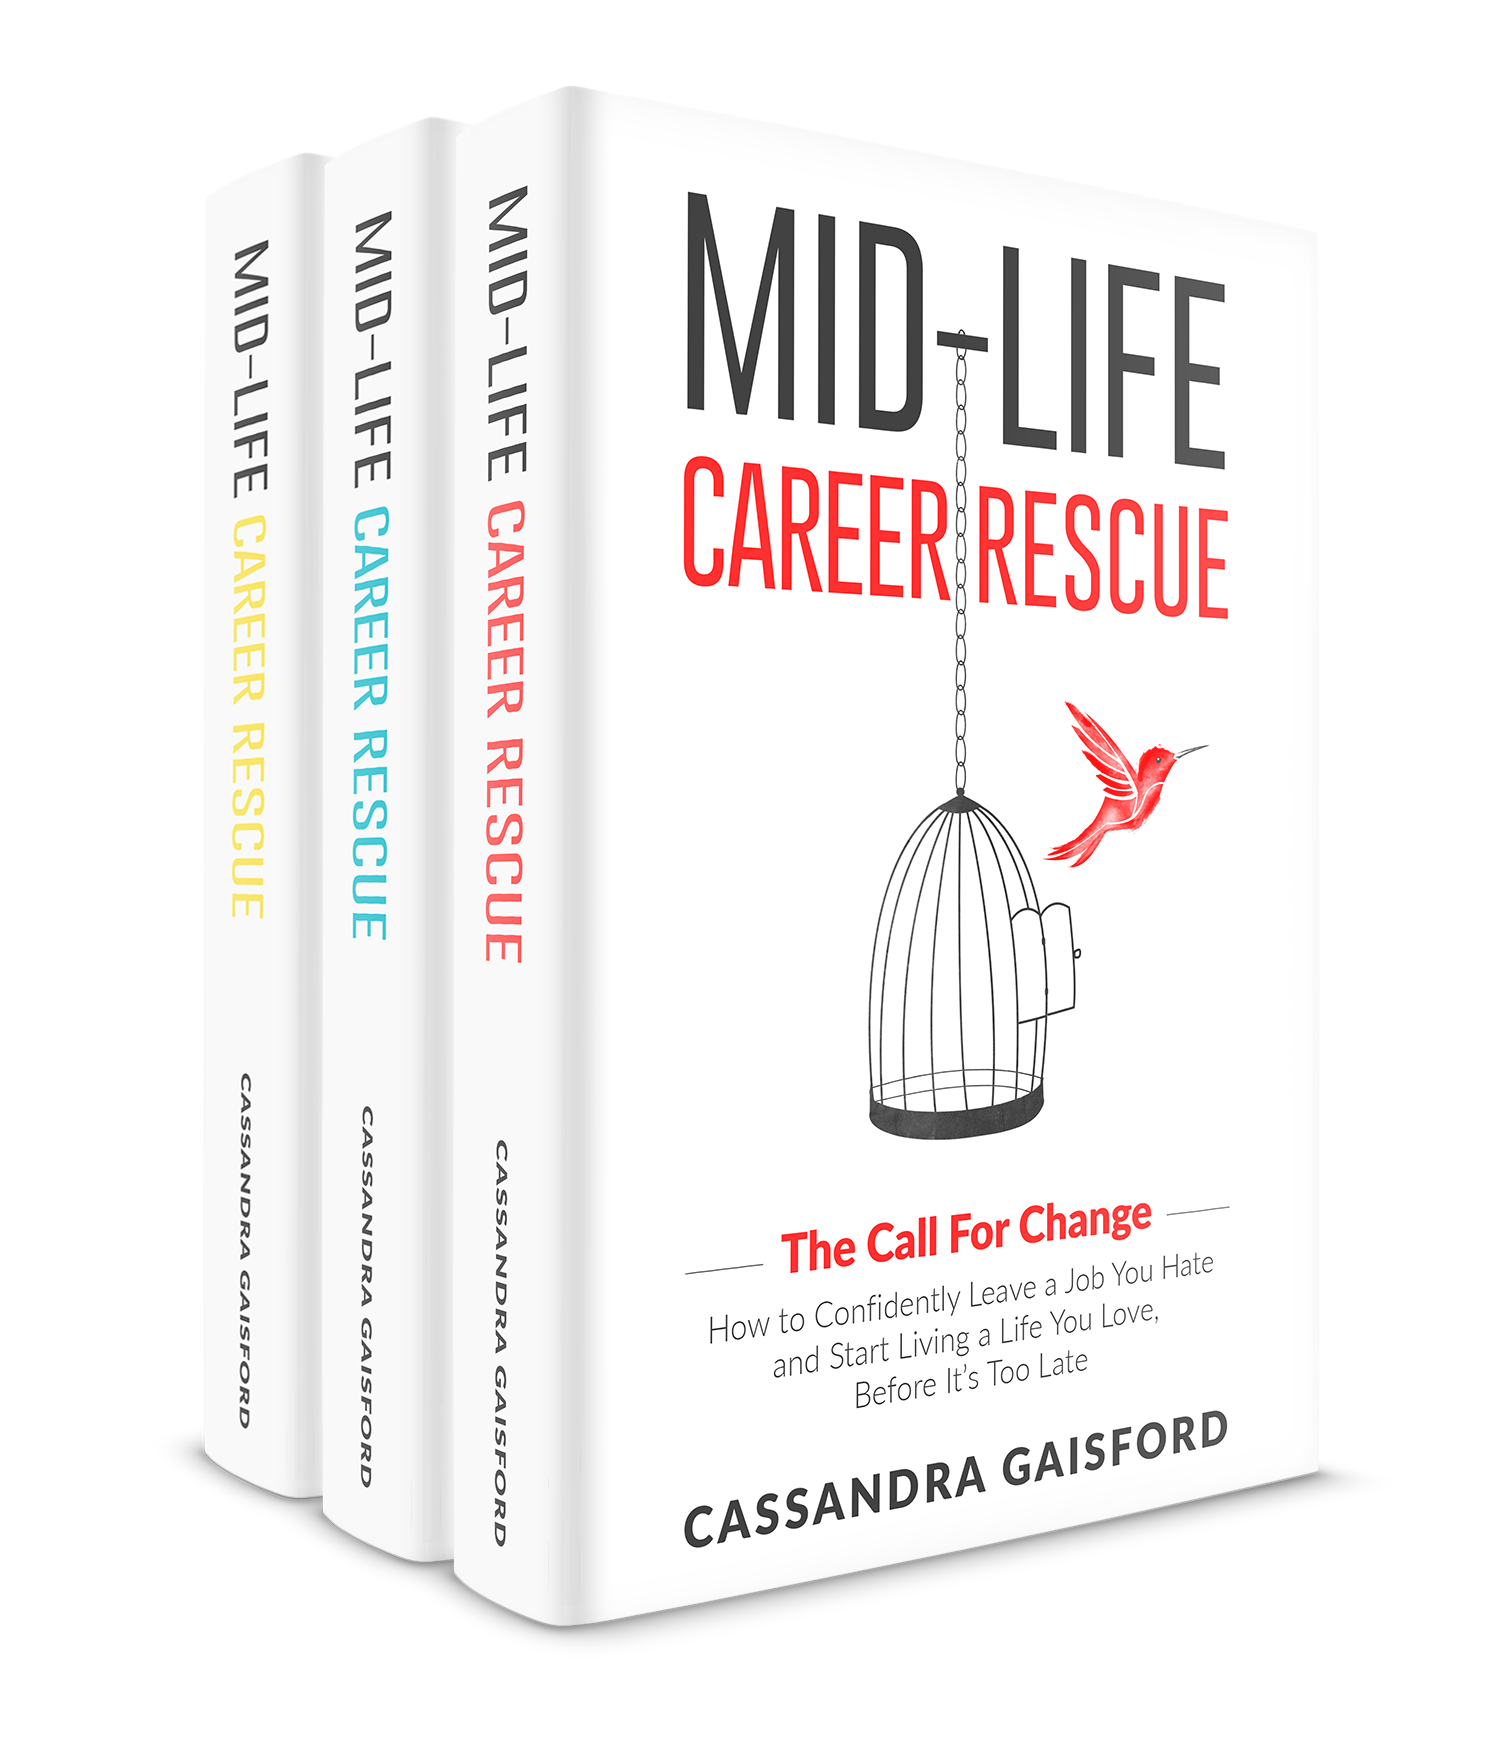 This Is An Edited Extract From Mid Life Career Rescue: (The Call For Change